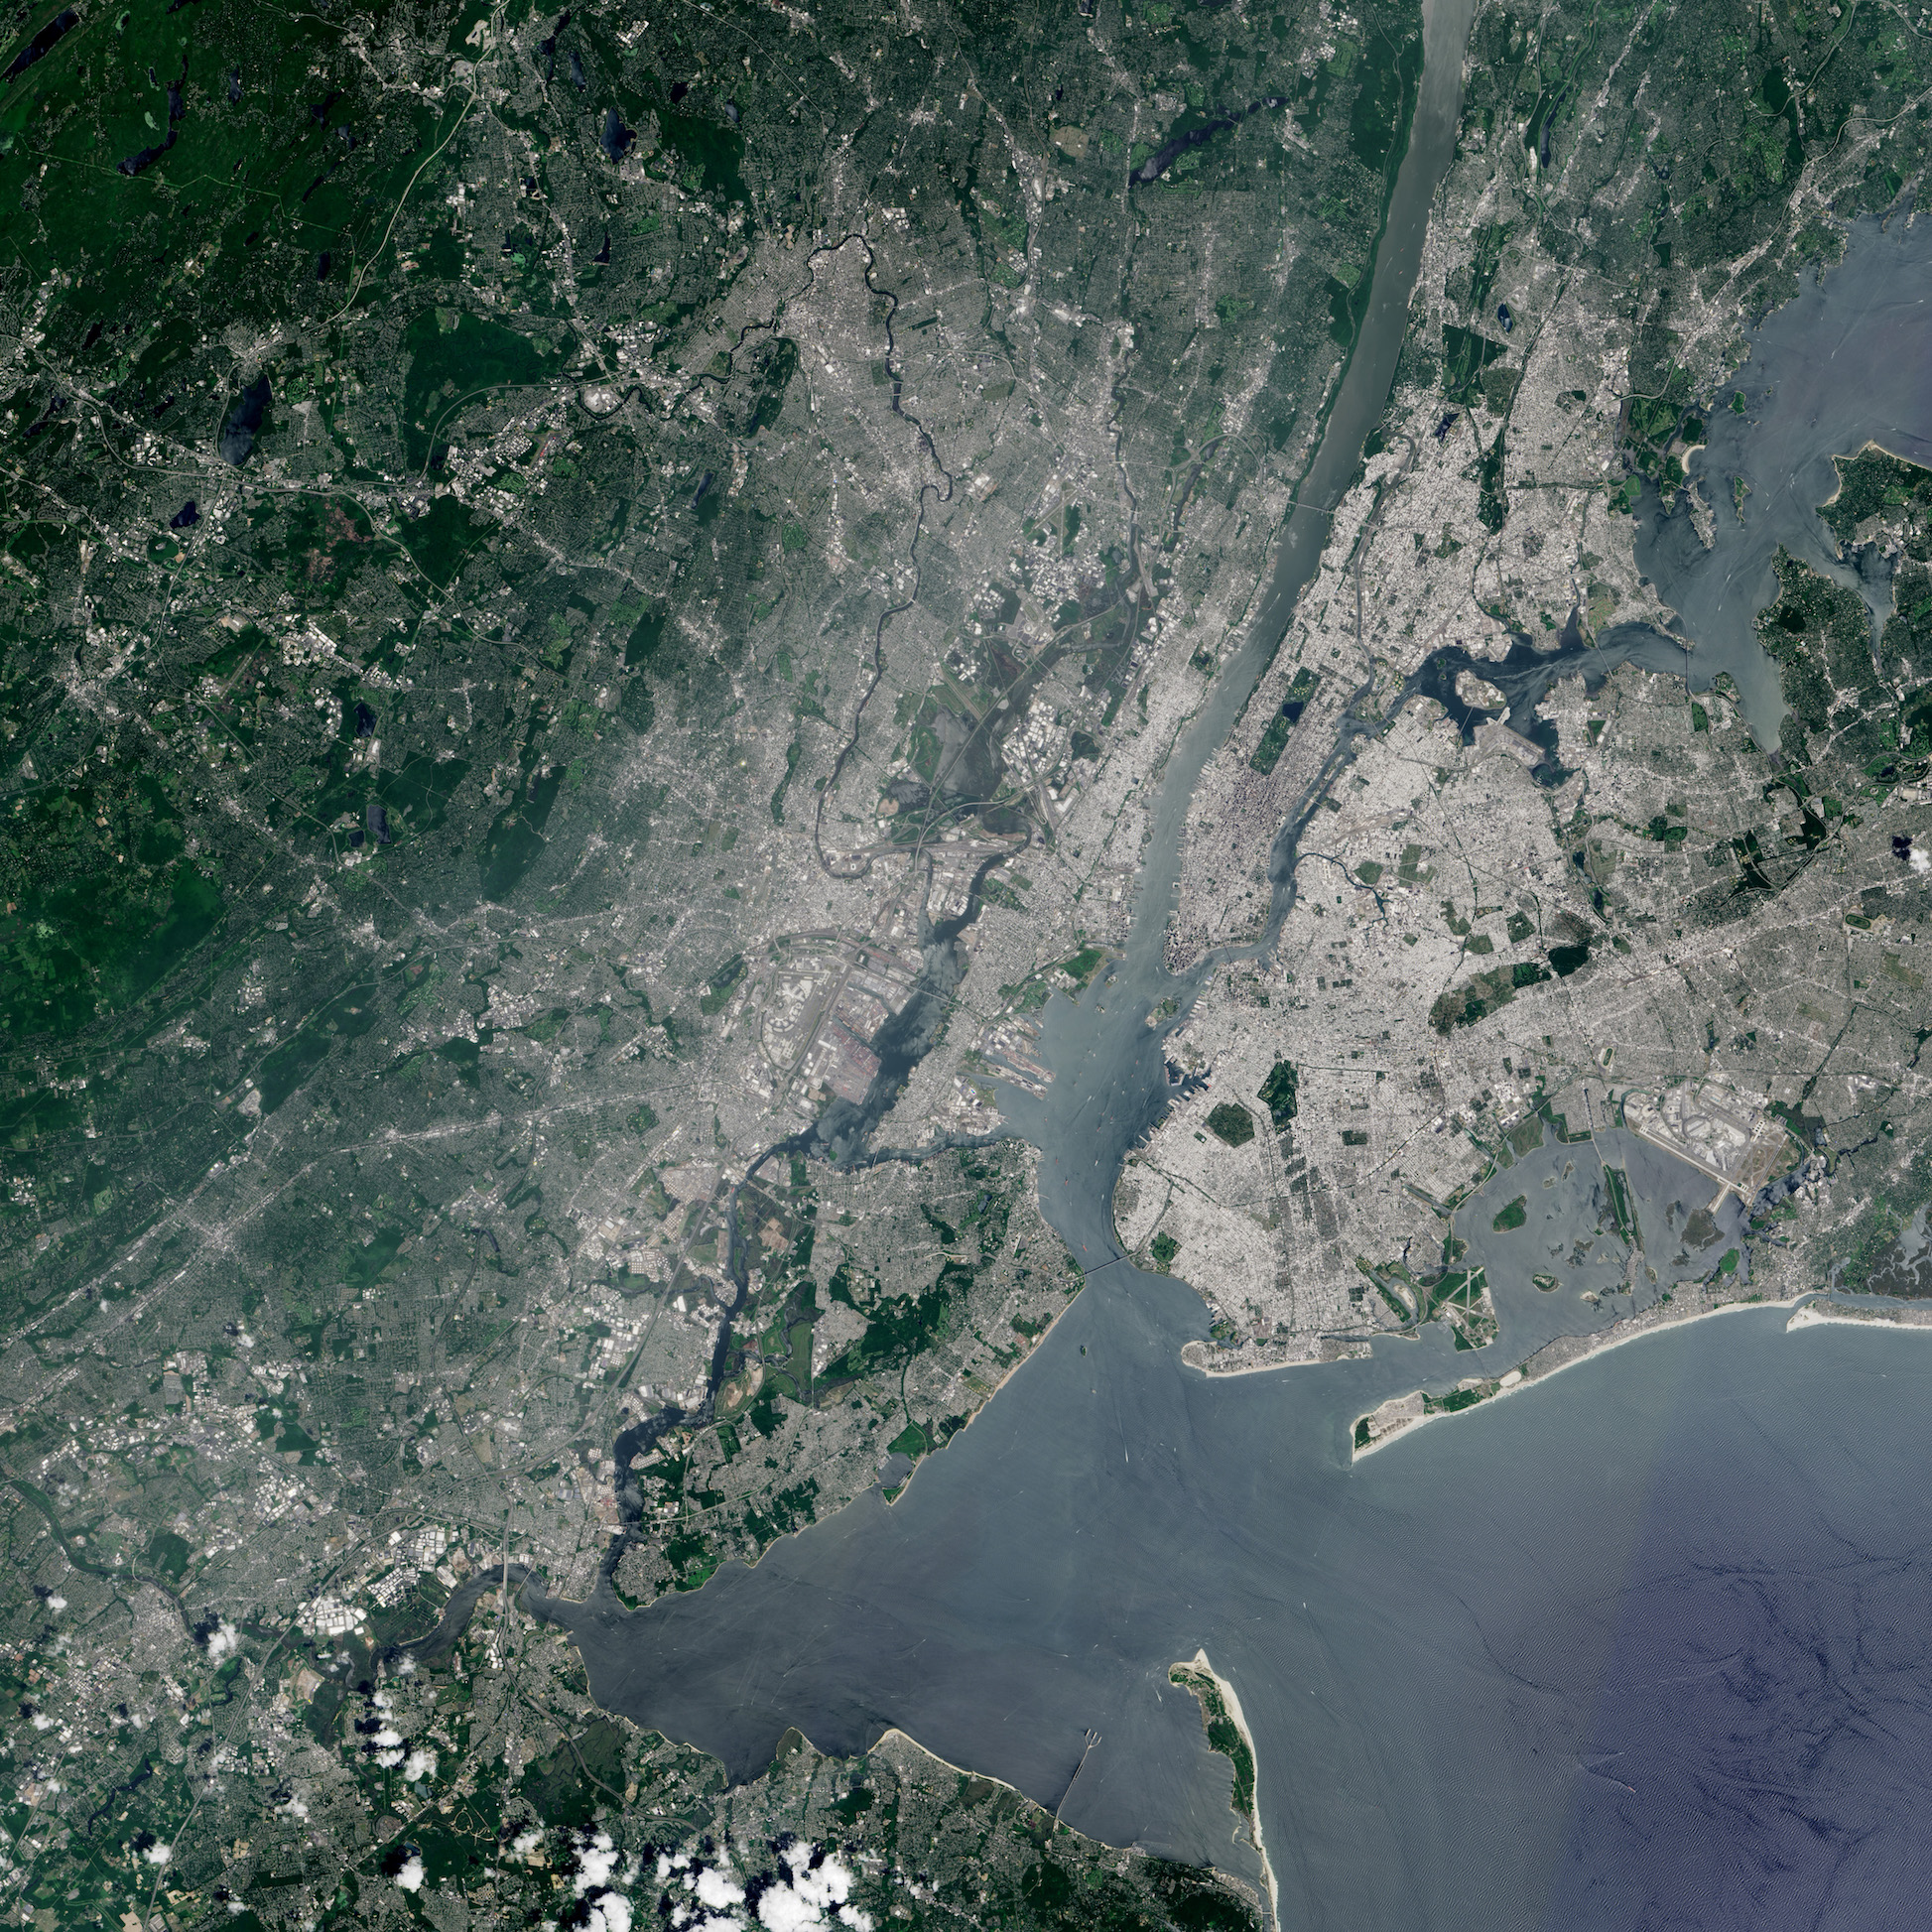 Today's Image of the Day comes thanks to the NASA Earth Observatory and features a look at the Statue of Liberty and Ellis Island in New York Harbor.